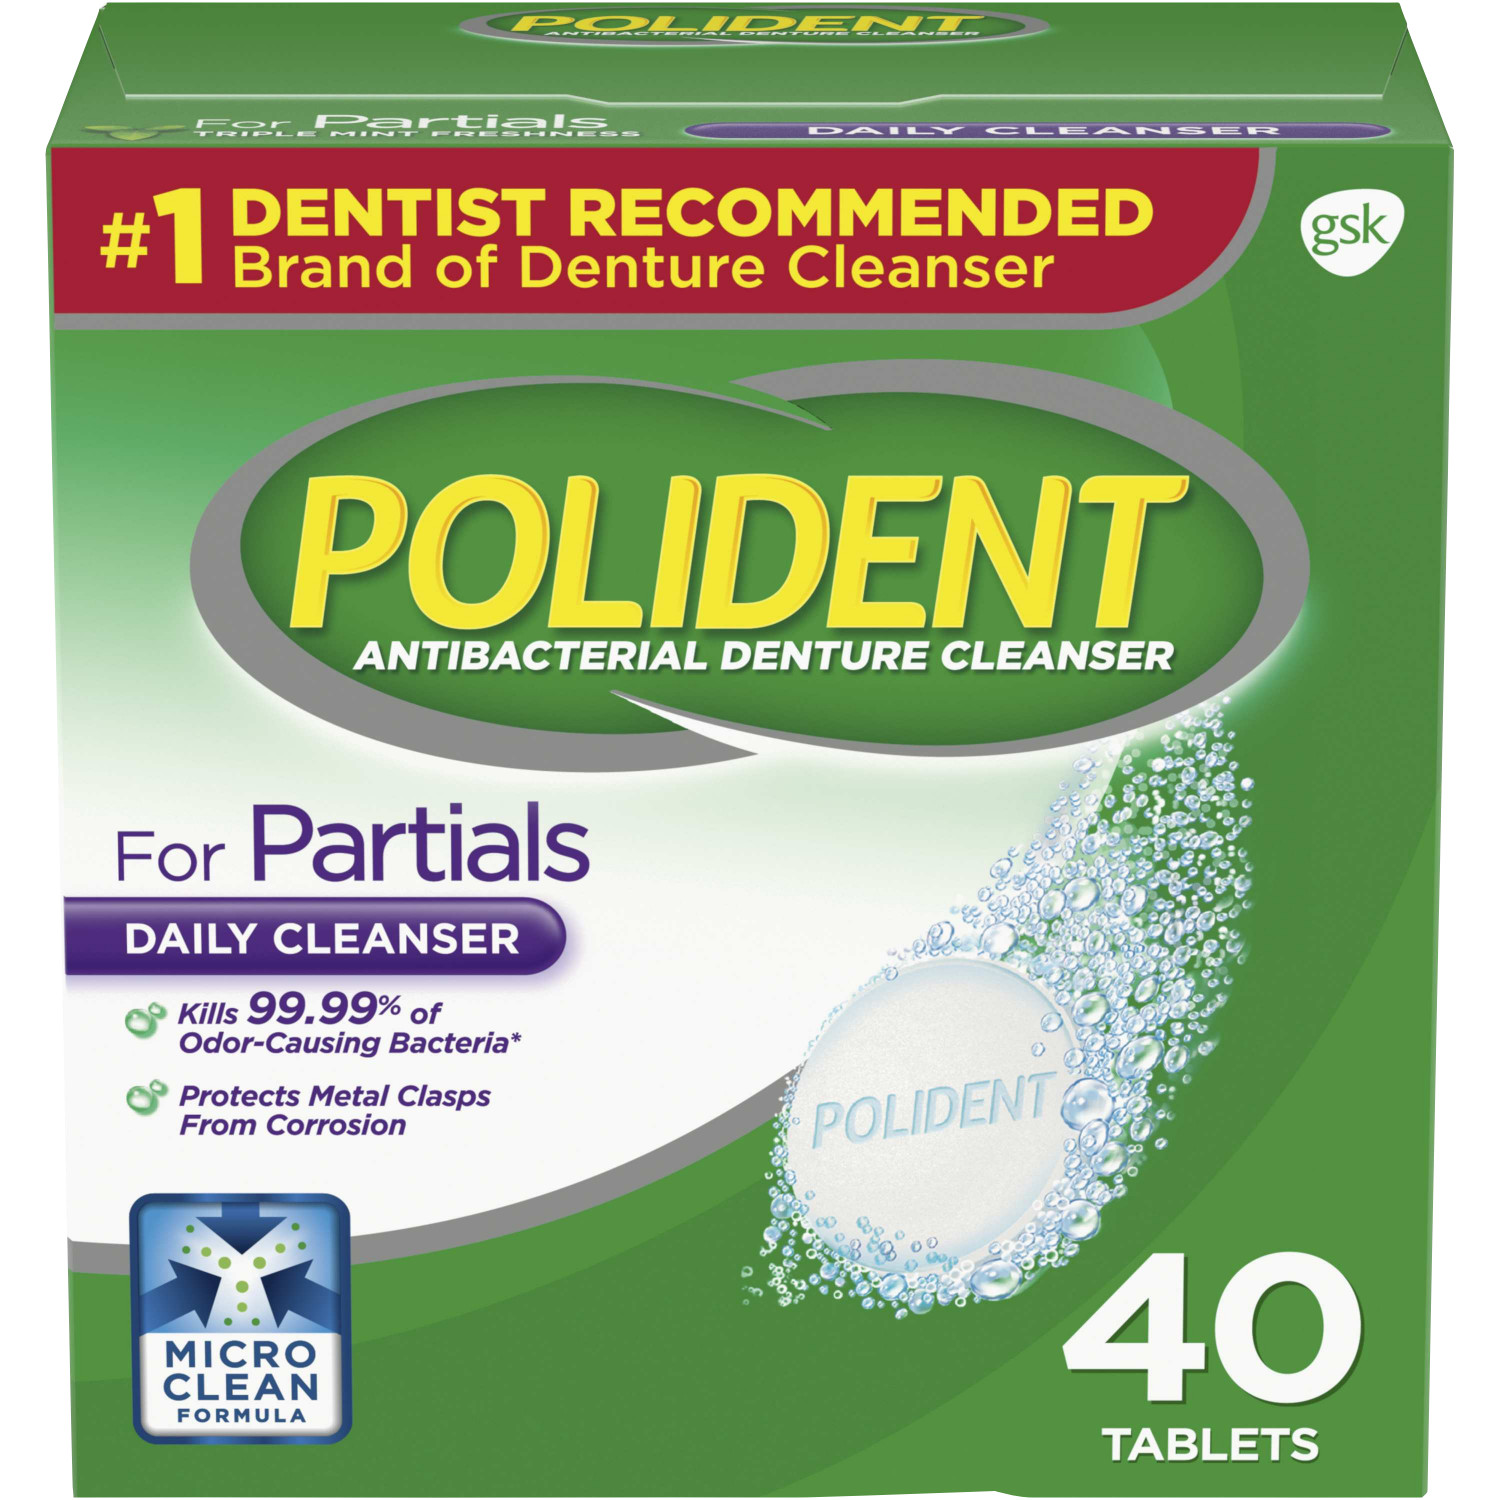 Polident Partials Antibacterial Denture Cleanser Effervescent Tablets, 40 count